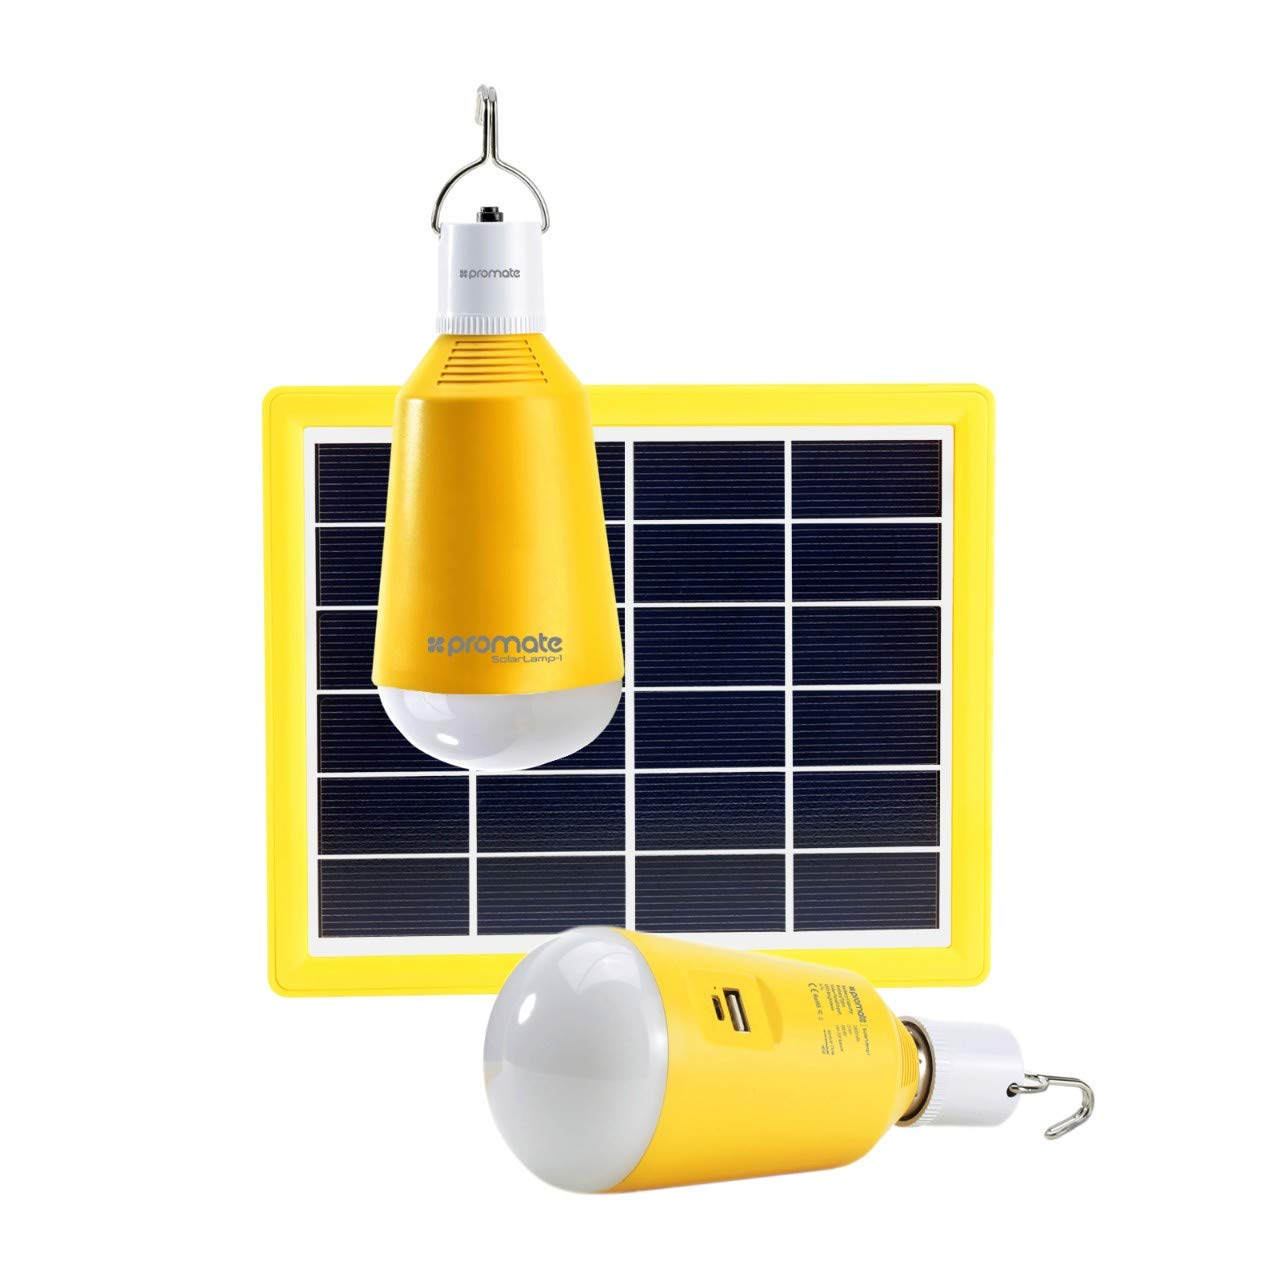 Solar Power Camping Light Telescopic USB Rechargeable Emergency LED Lamp~LY